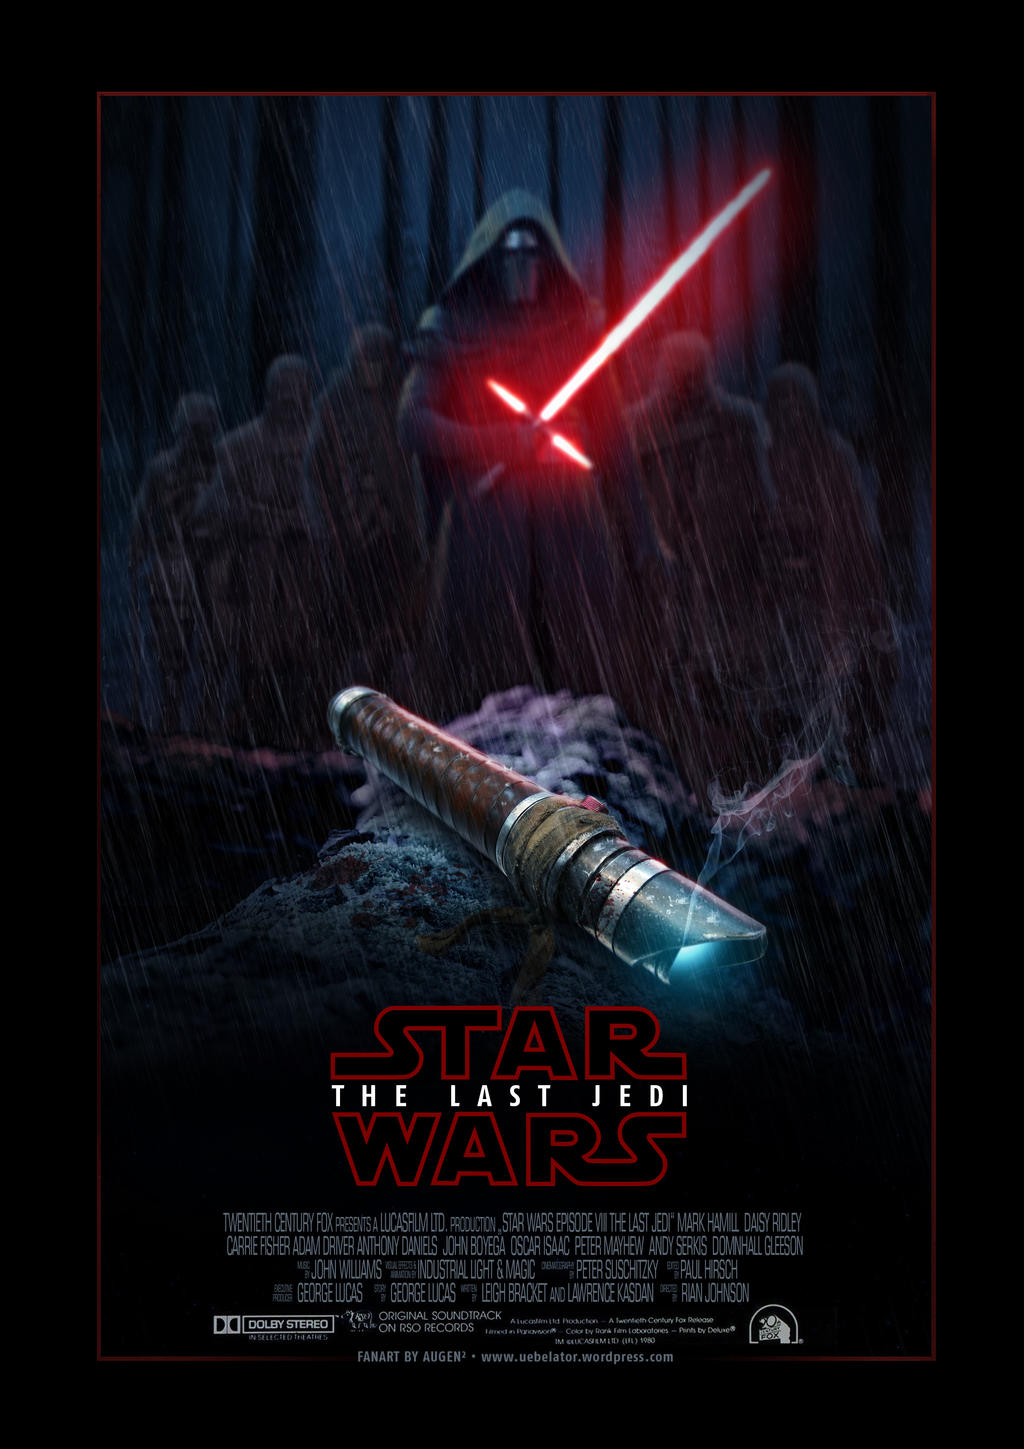 fanart: star wars poster - episode 8 the last jedi by uebelator on